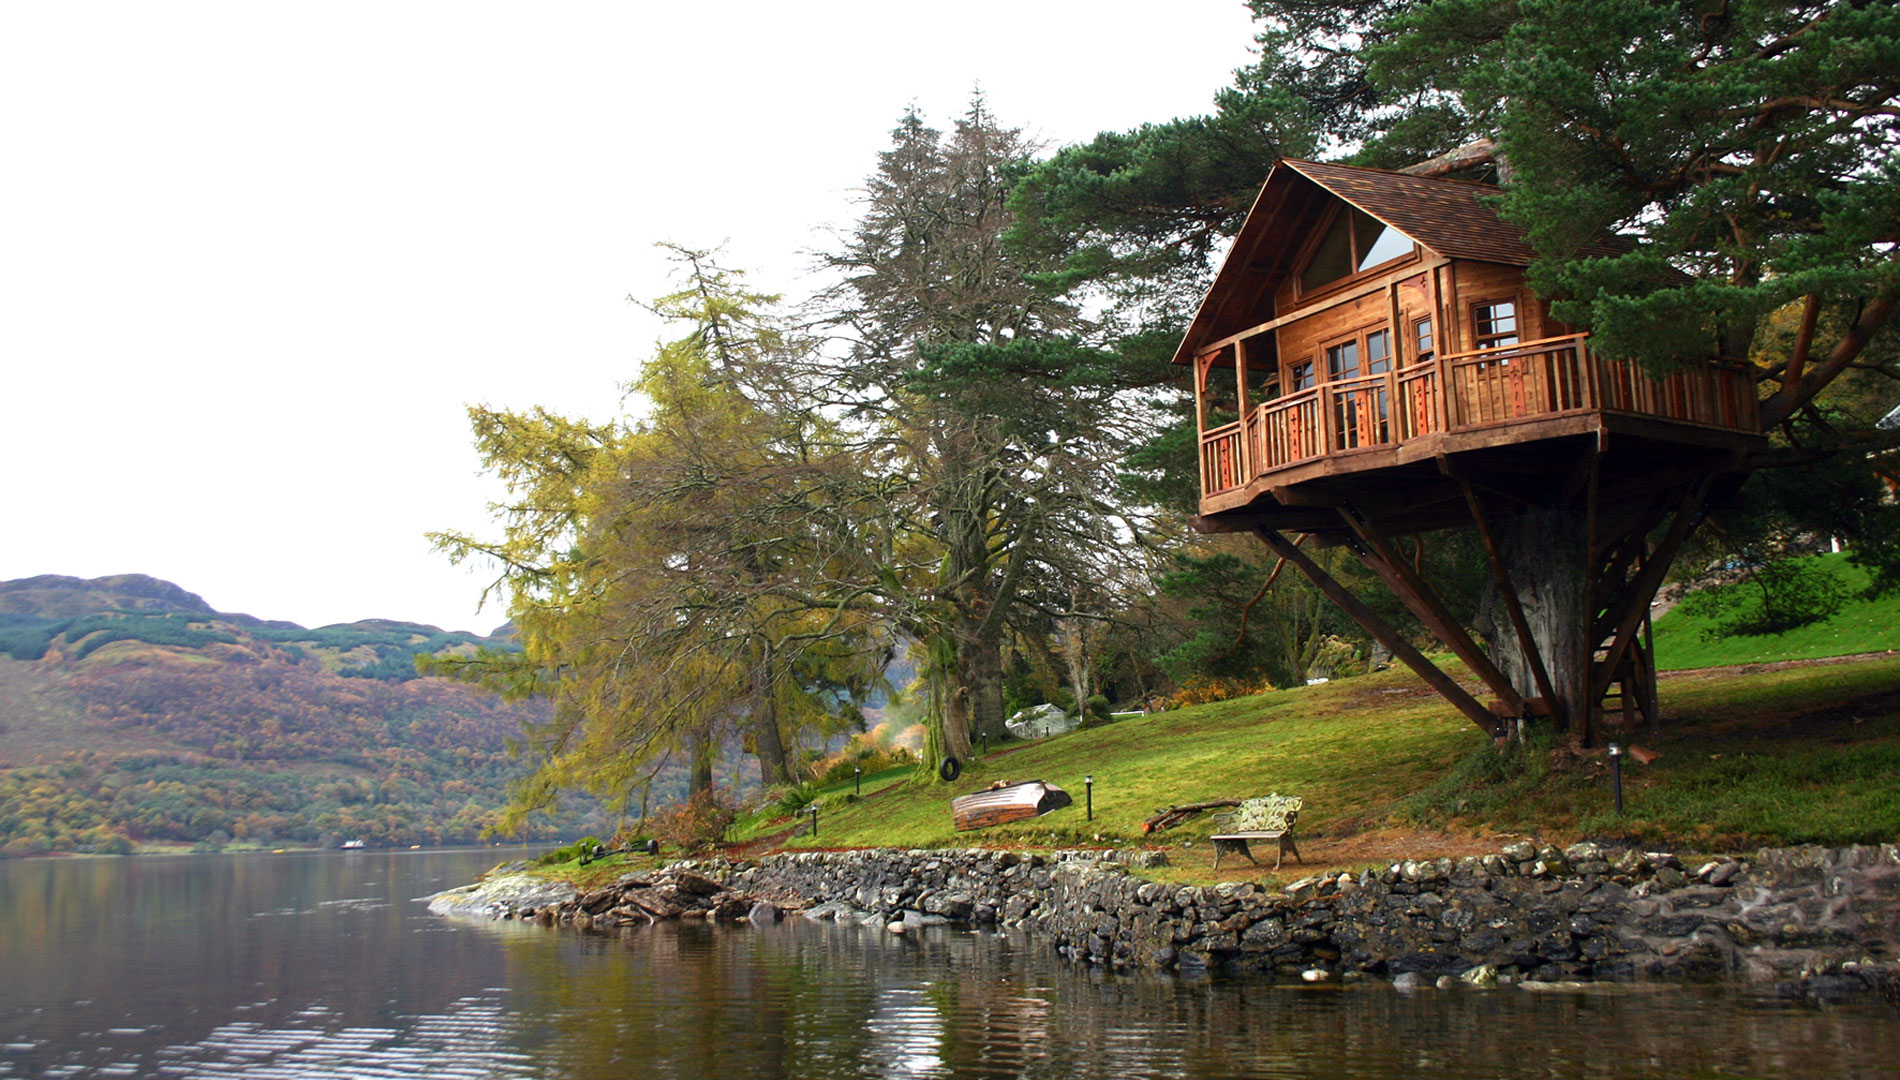 Tree House amazing tree house with lake view | dream homes | mortgage calculator